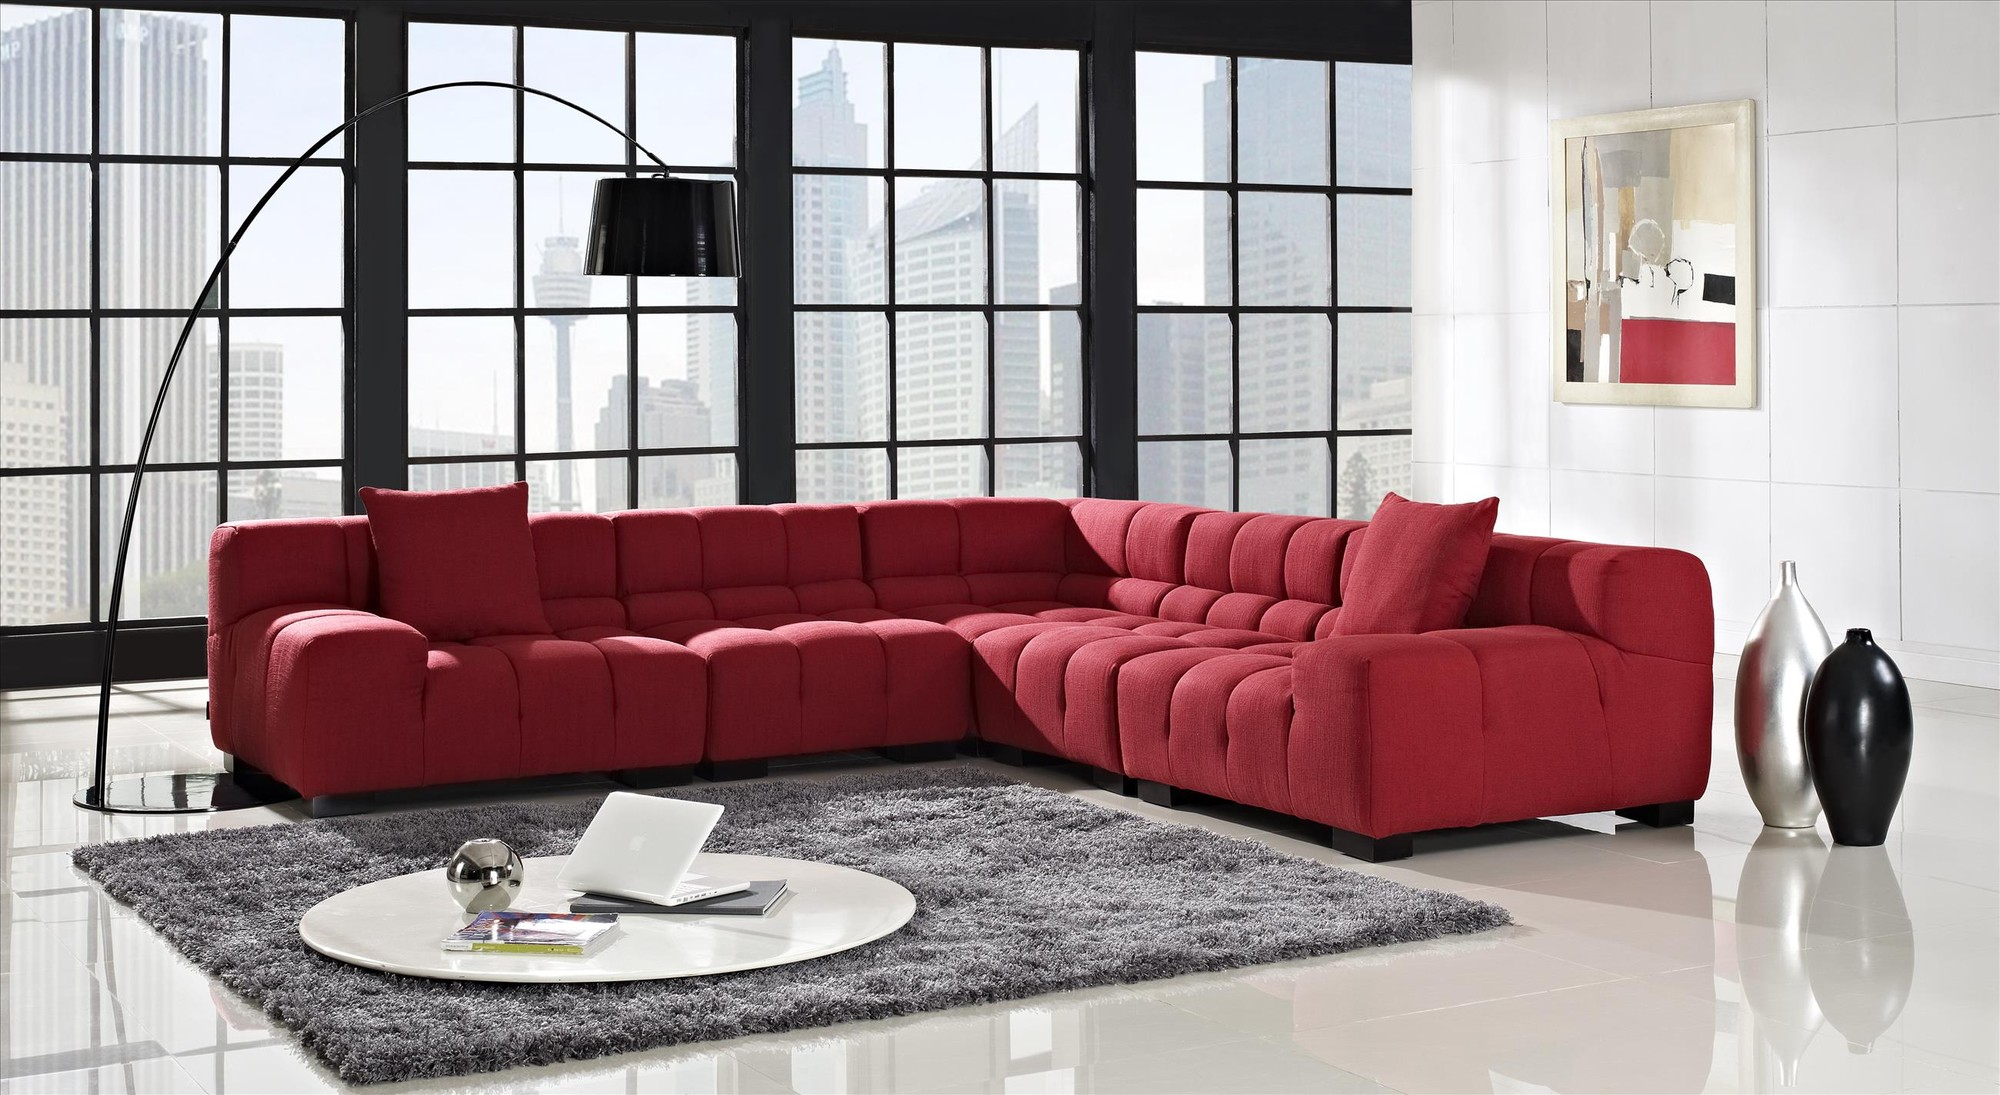 Comfortable Sectional Mid Century Modern Living Room Petrie Piece Intended For Mcdade Graphite Sofa Chairs (Image 3 of 20)